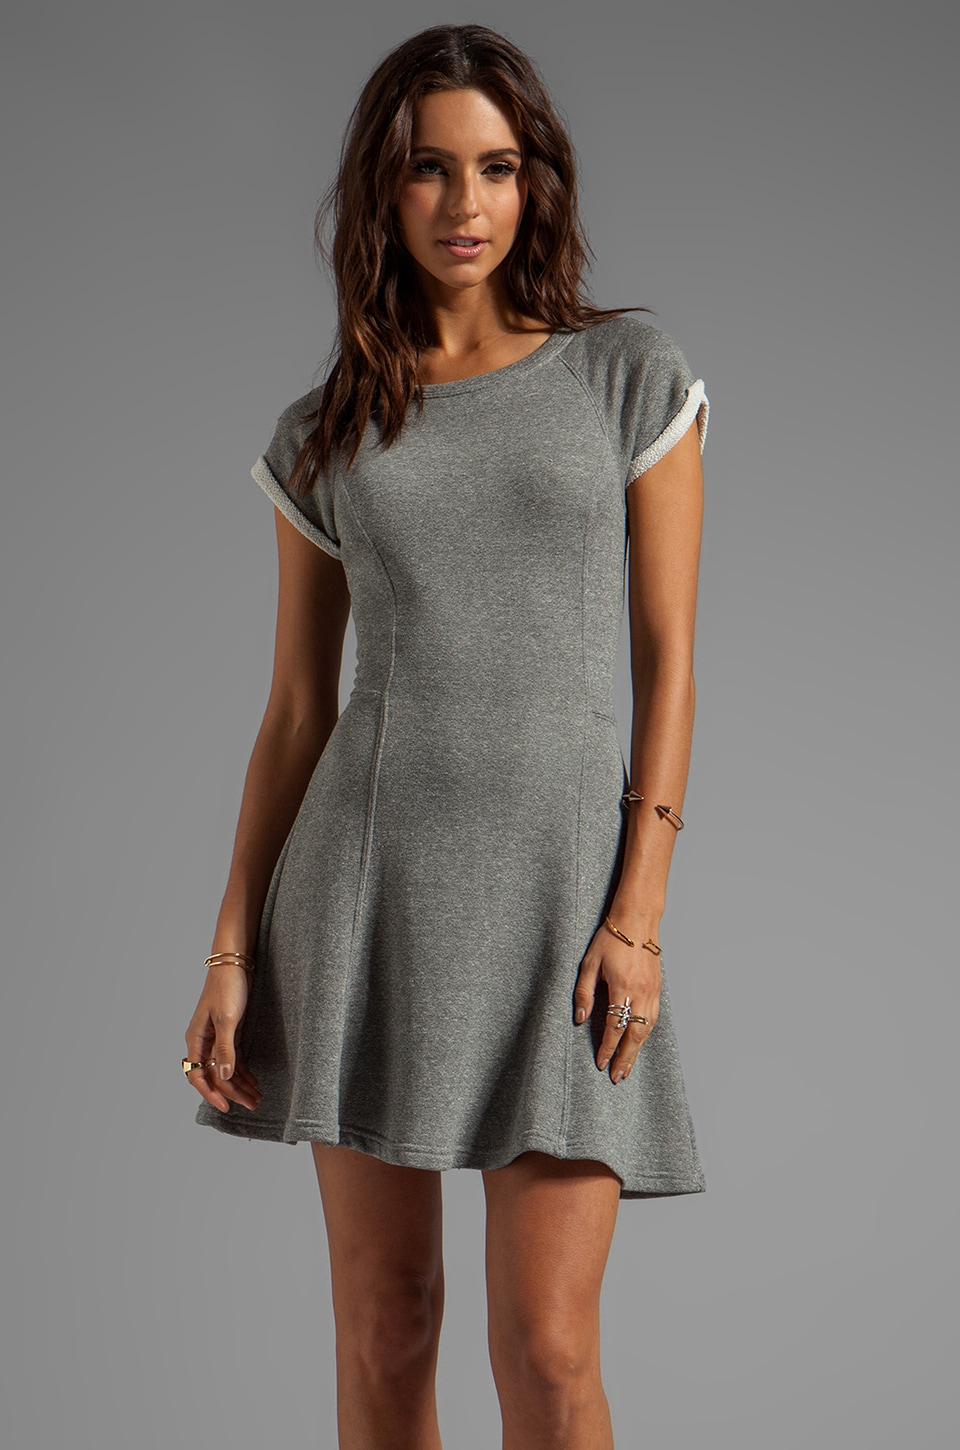 Sanctuary Knits Tennis Dress in Heather Grey